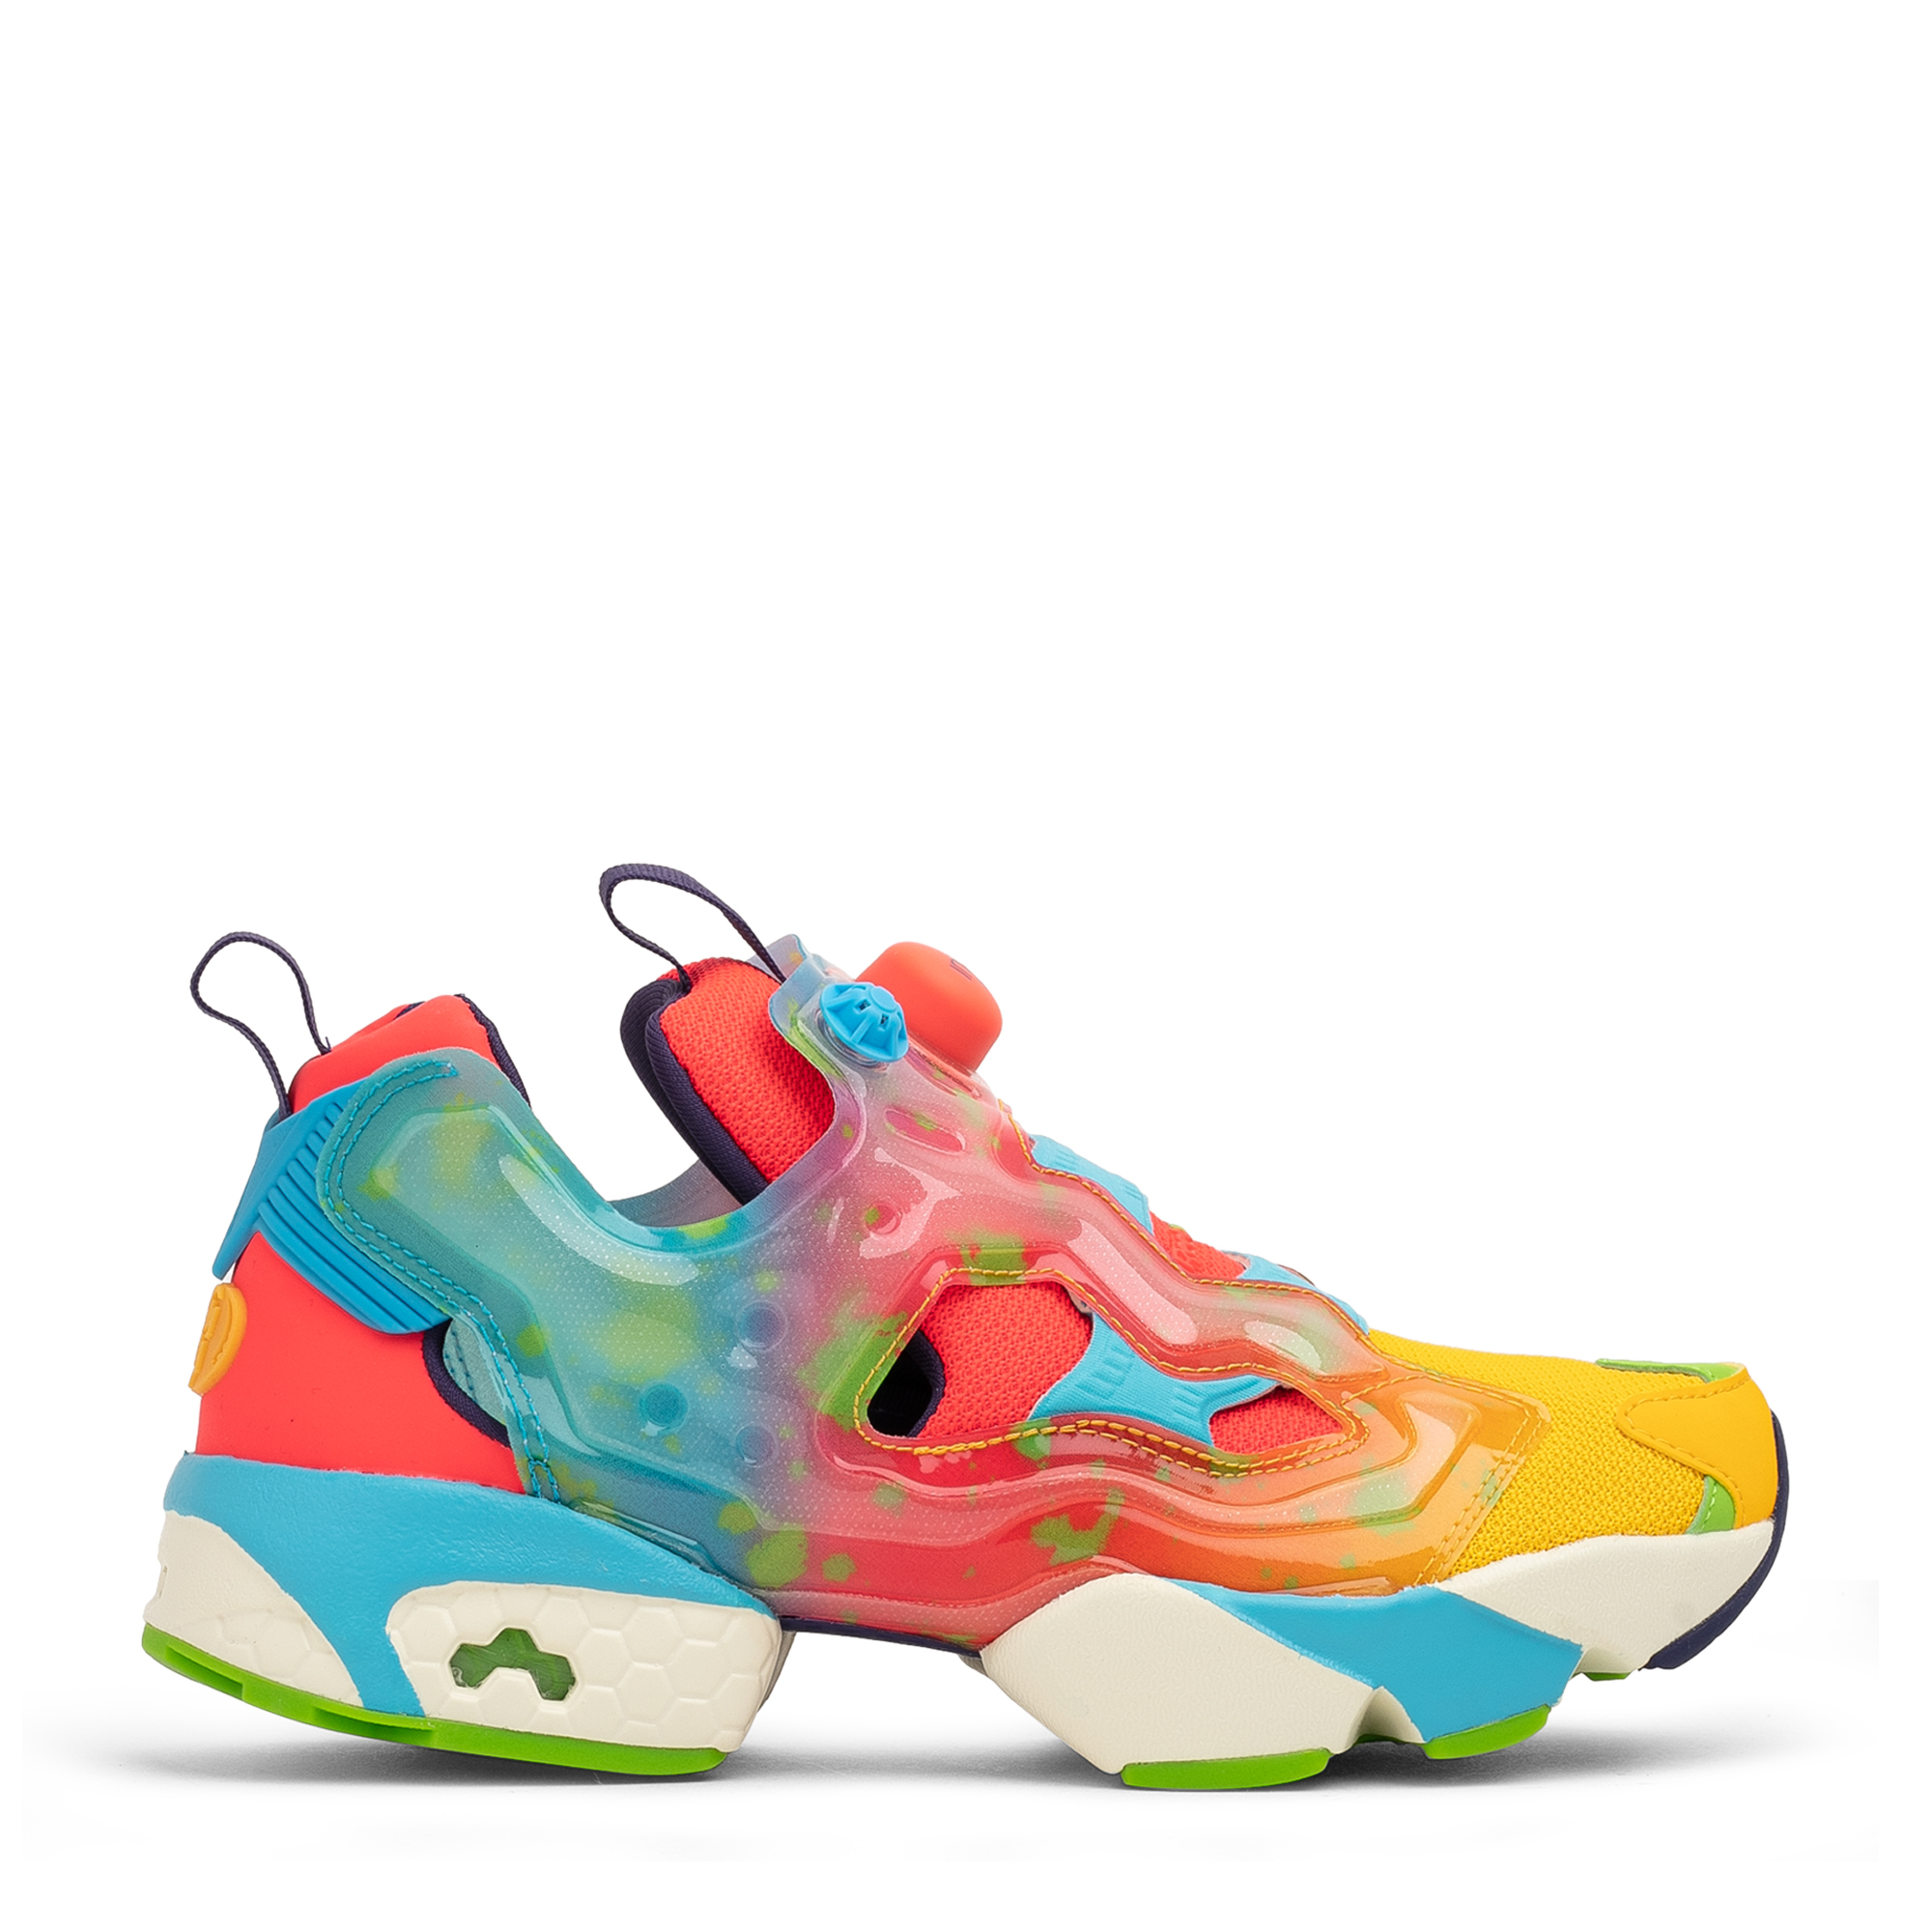 x Jelly Belly Instapump Fury sneakers